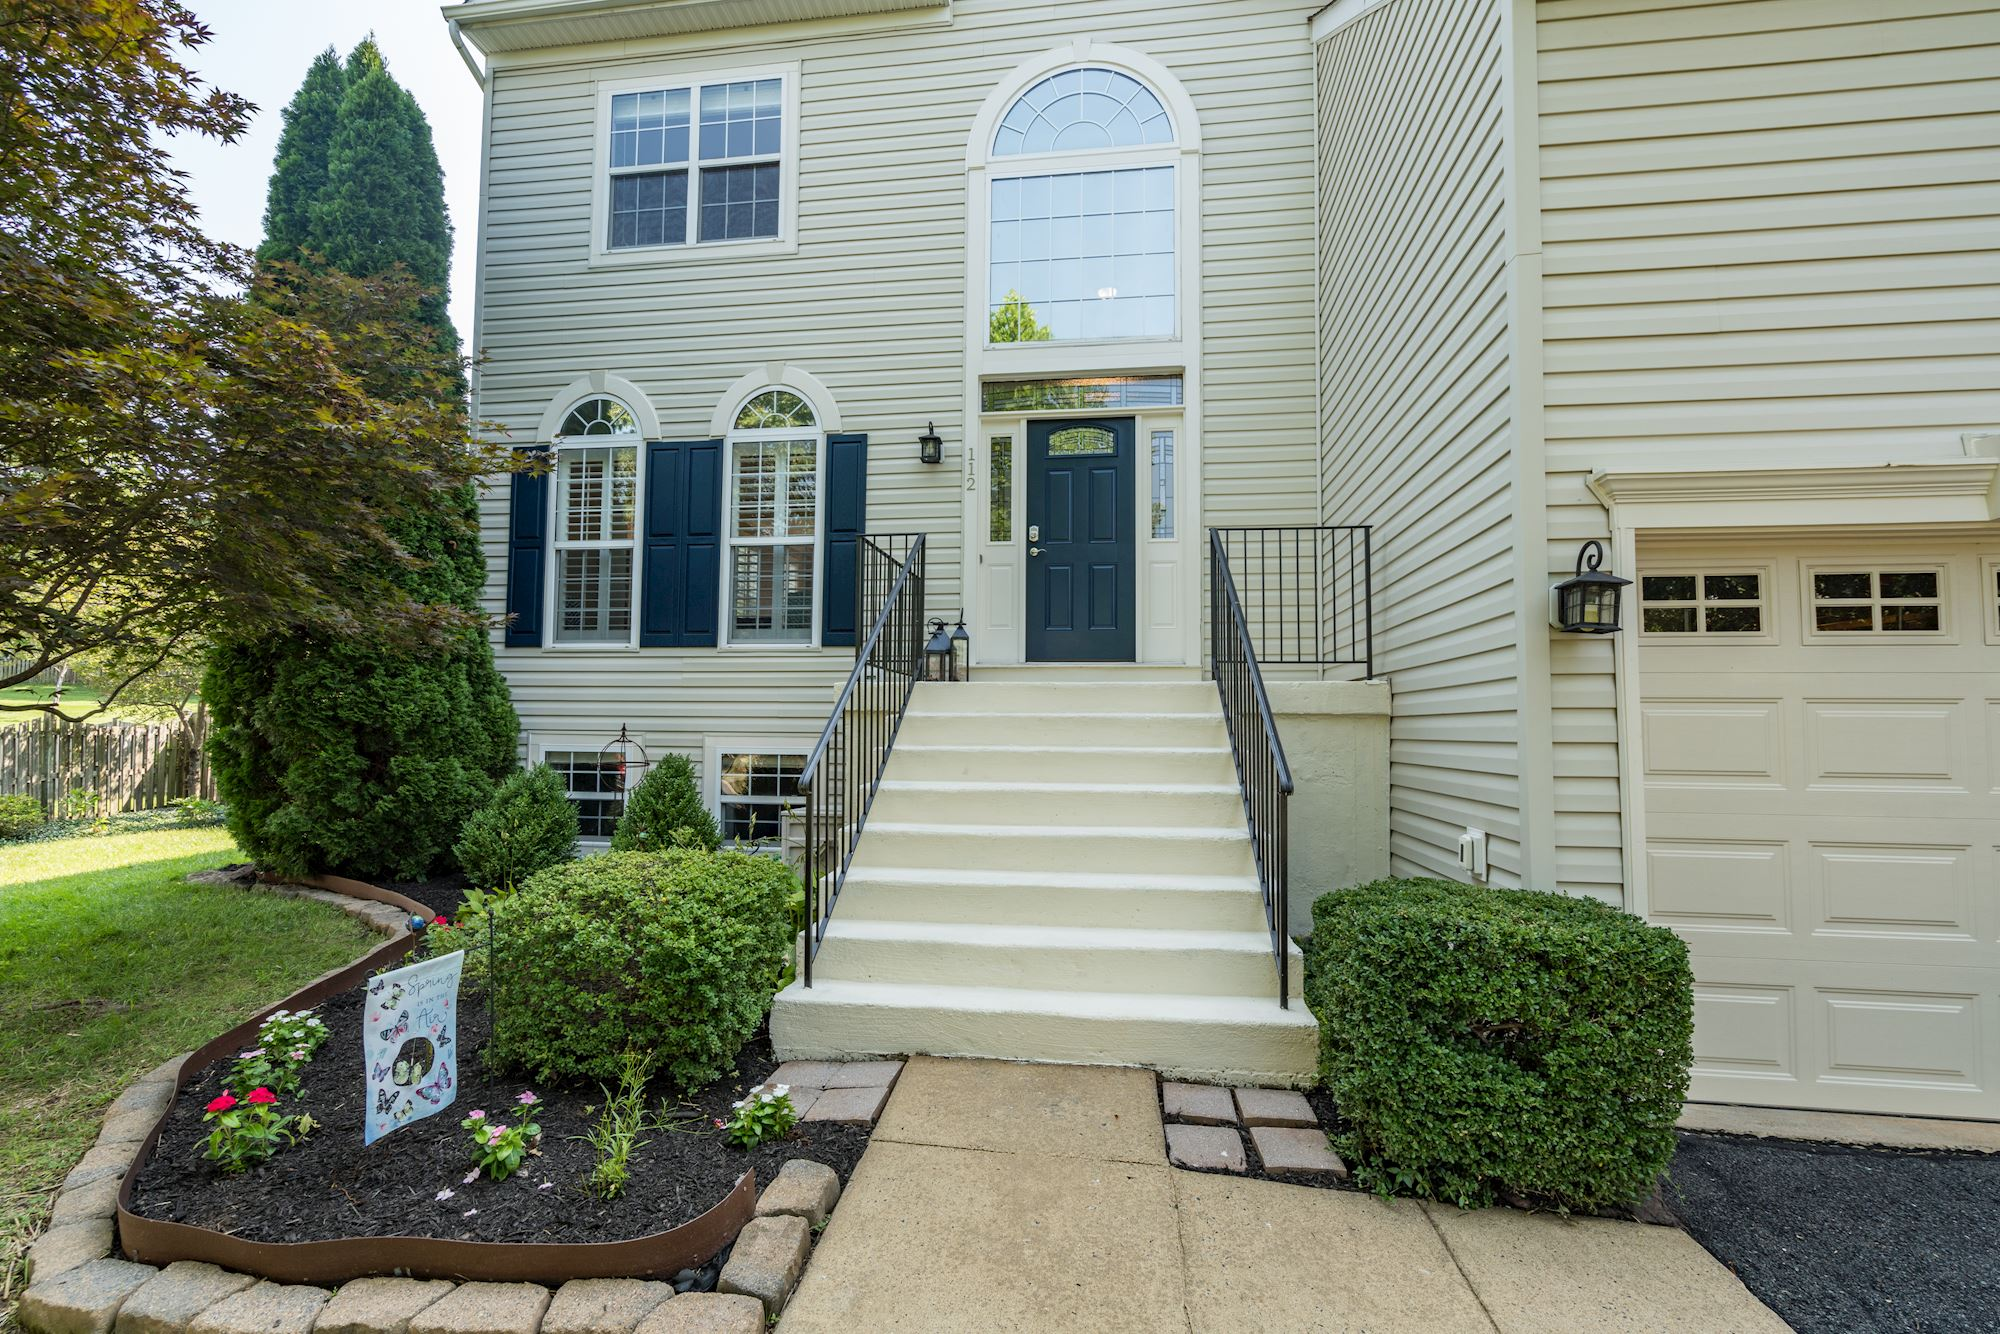 NEW LISTING: Gorgeous 4 BD in Heart of Potomac Crossing in Leesburg,VA